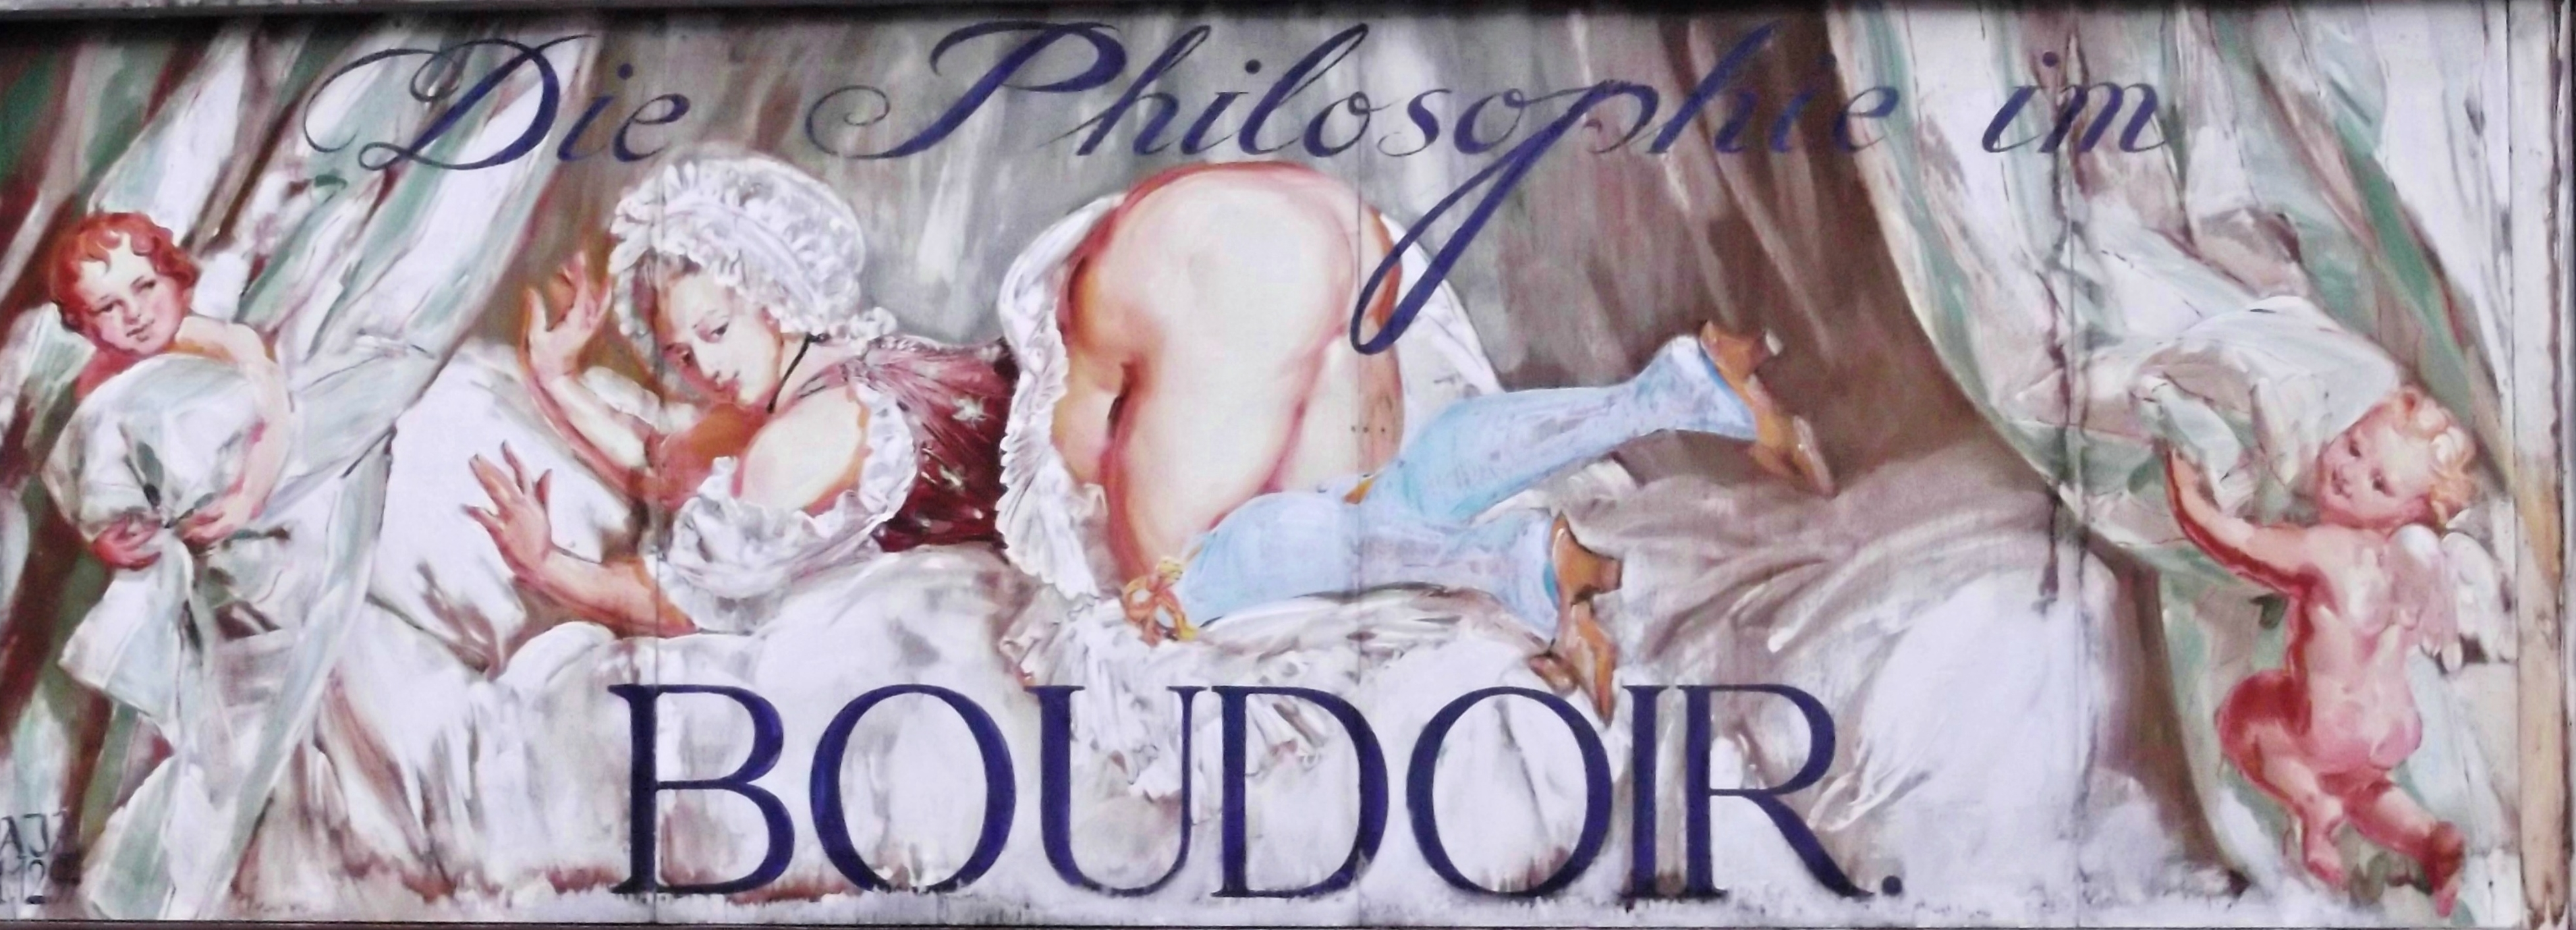 Die Philosophie im Boudoir  Philosophy in the Bedroom  based on the book by  Marquis de Sade   A shop sign in the Berg Alley  the street where Sigmund  Freud. Snippets of Vienna    KleesButterfly   A TravelBlog